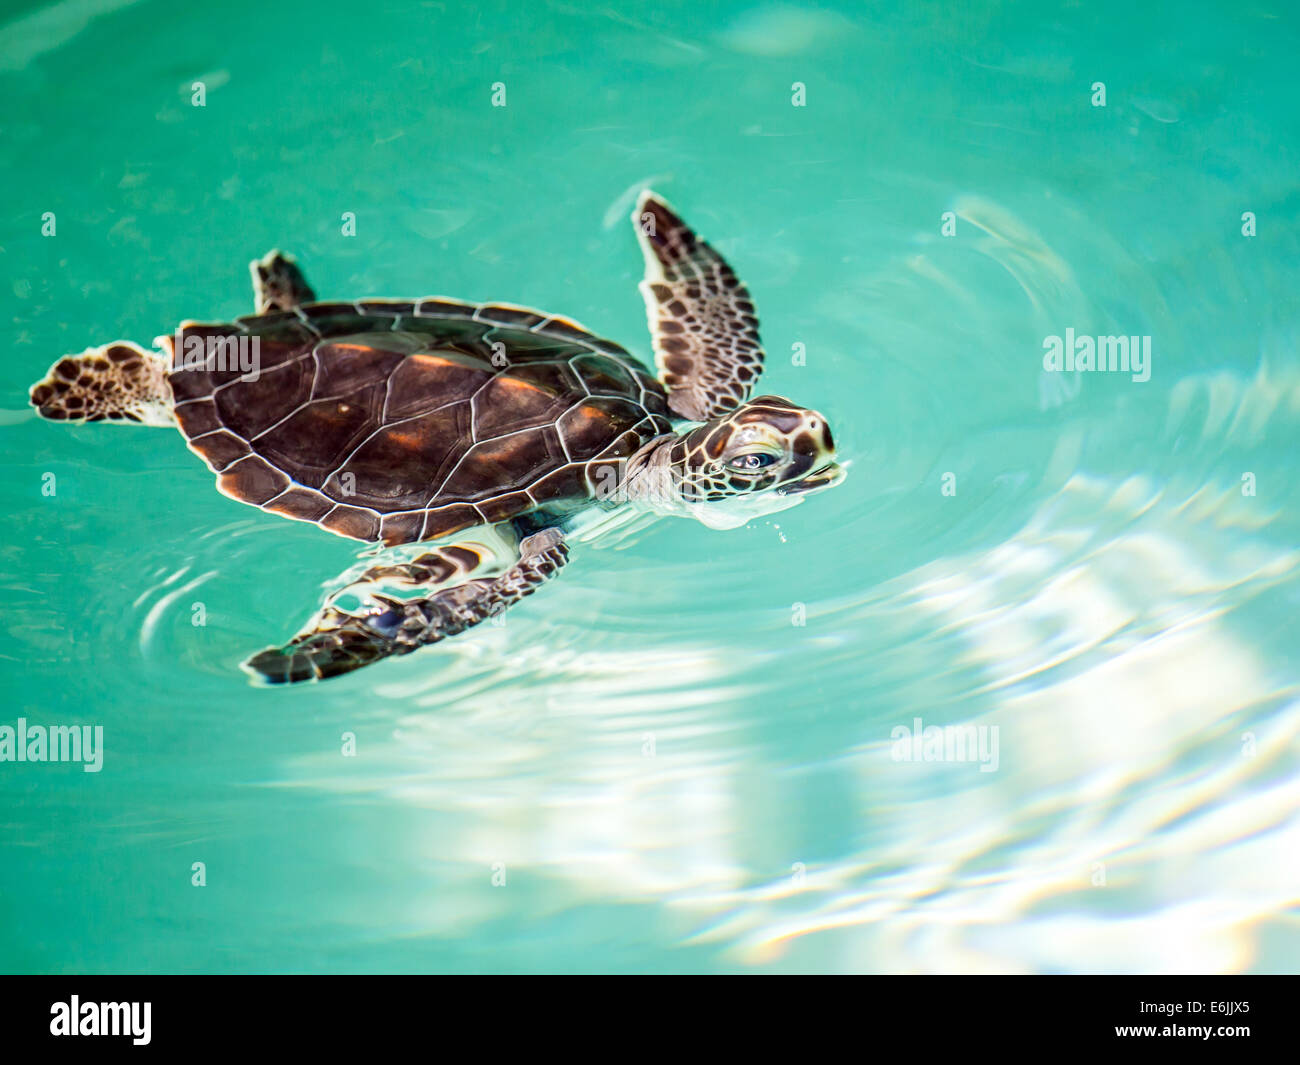 Albino Baby Sea Turtles Swimming